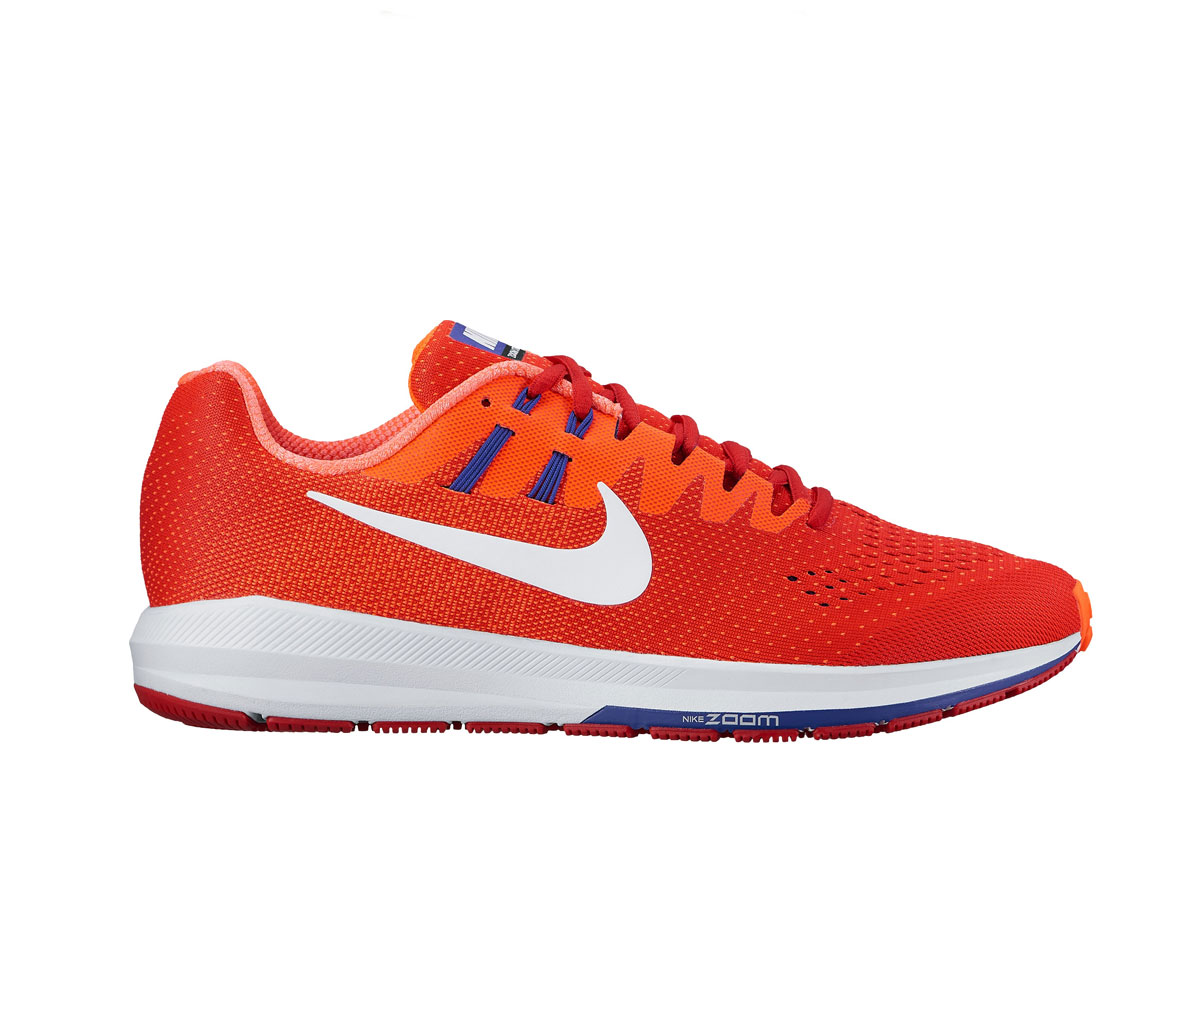 3b5c32160e920 Distance Running Shoes  The Most Supportive Options for Summer Fall 2016